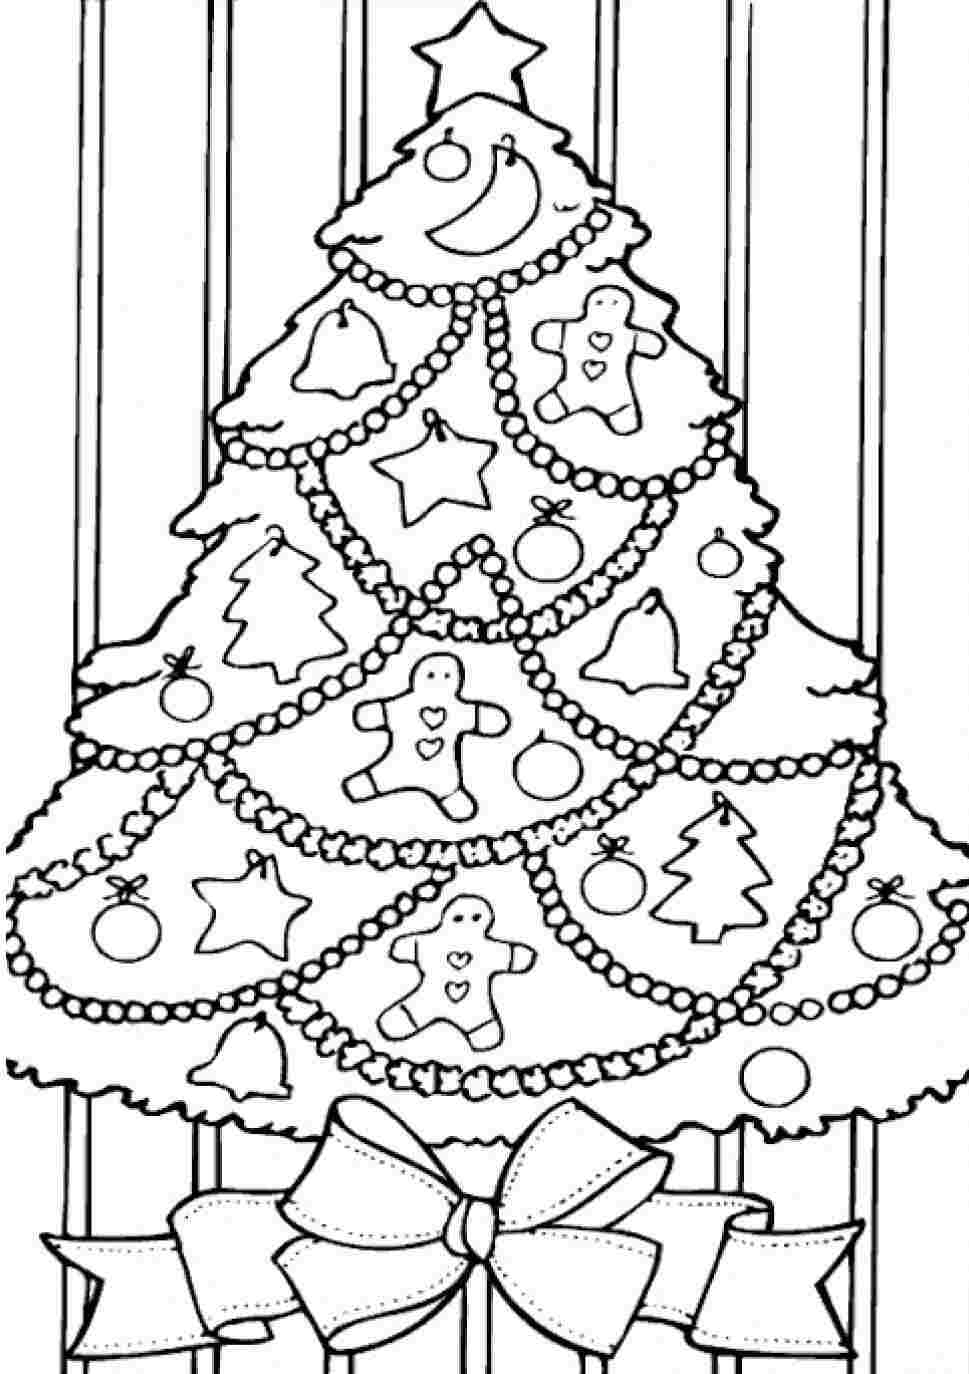 Kids coloring pages christmas trees printable - Christmas Tree Coloring Pages For Kids